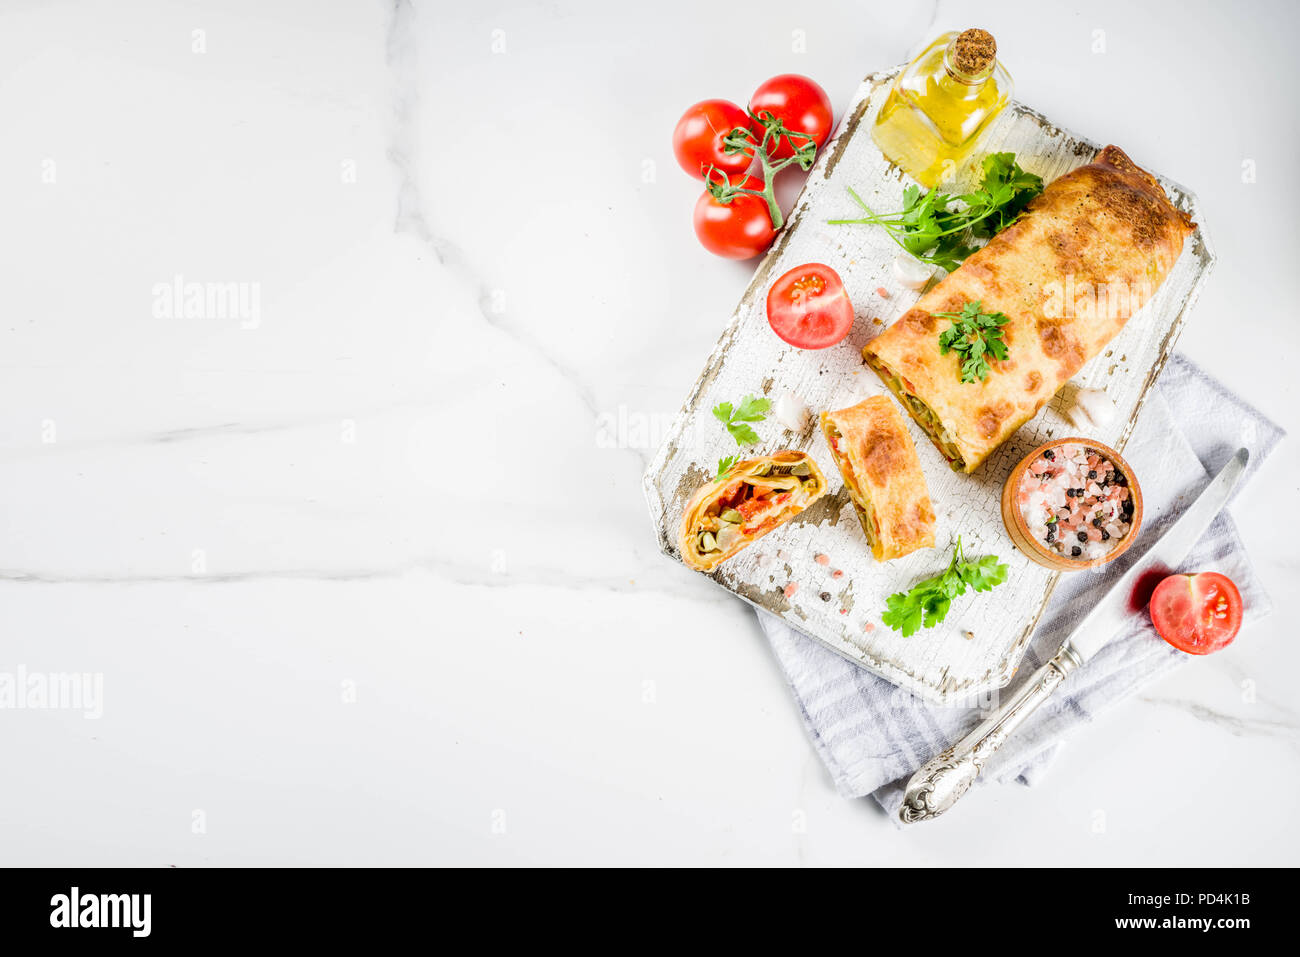 Vegetable savory strudel, homemade autumn baking, with tomatoes, bell pepper, mushrooms, wooden background copy space Stock Photo